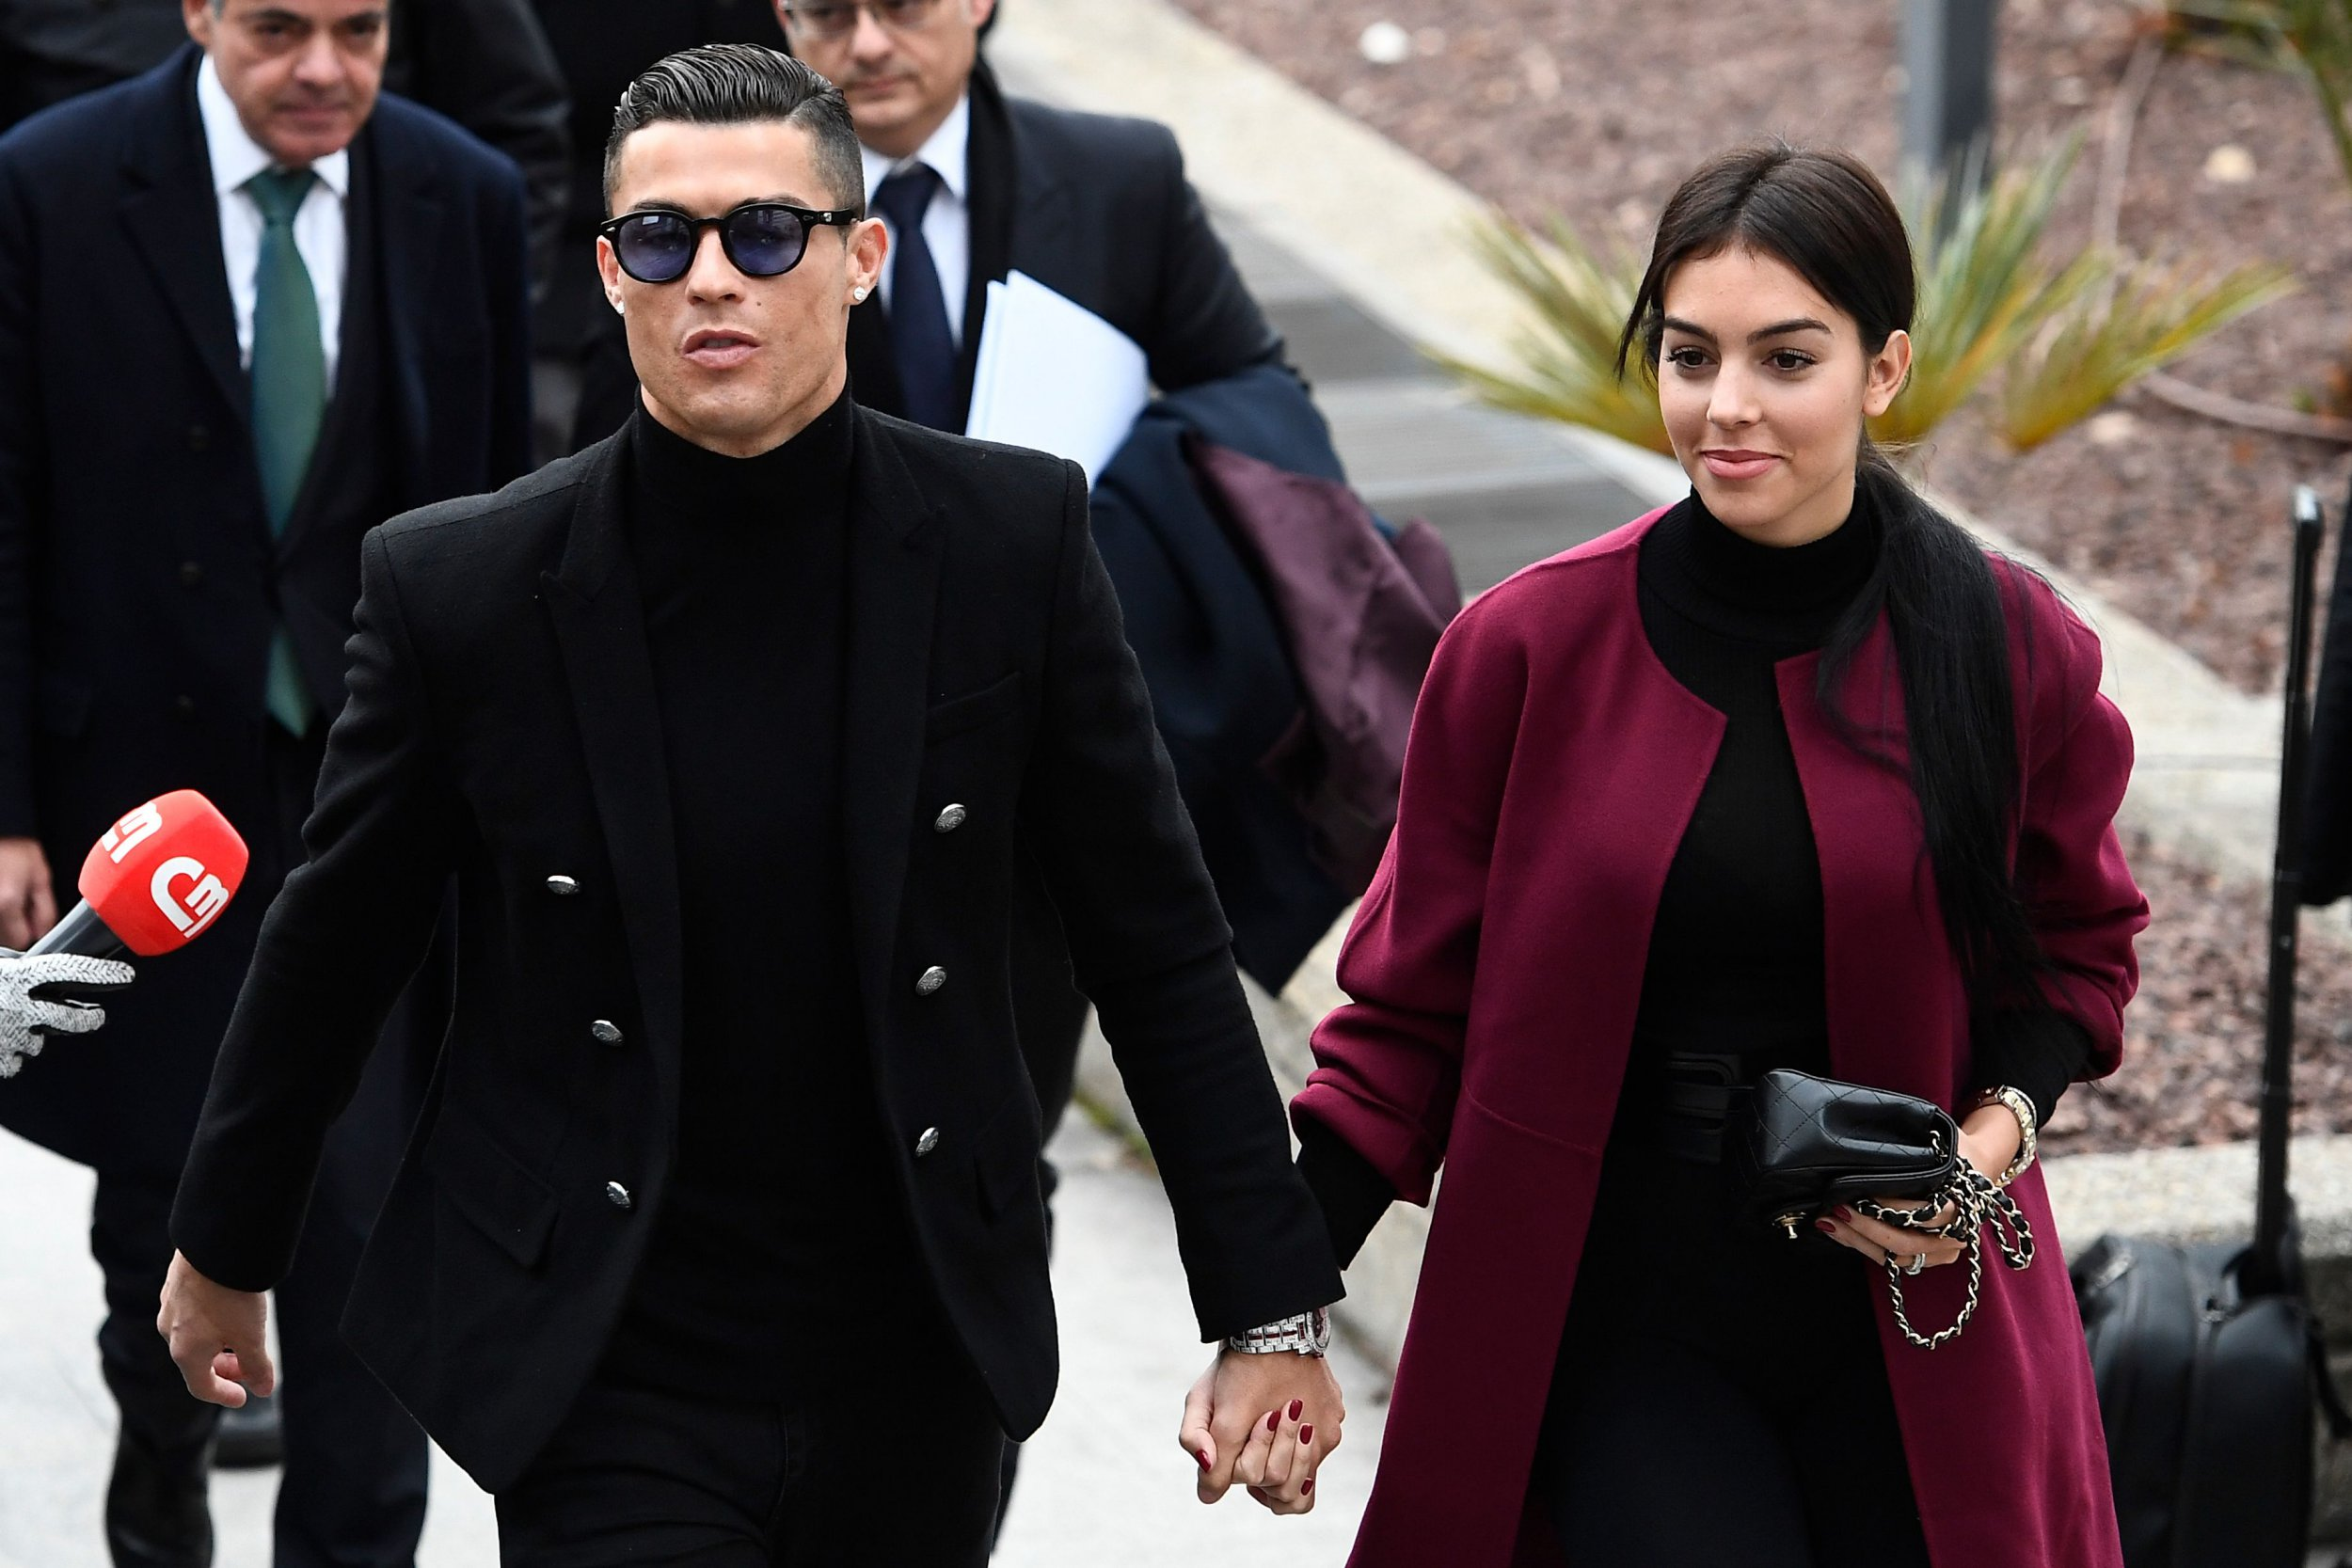 Juventus' forward and former Real Madrid player Cristiano Ronaldo arrives with his Spanish girlfriend Georgina Rodriguez to attend a court hearing for tax evasion in Madrid on January 22, 2019. - Ronaldo is expected to be given a hefty fine after Spanish tax authorities and the player's advisors made a deal to settle claims he hid income generated from image rights when he played for Real Madrid. (Photo by PIERRE-PHILIPPE MARCOU / AFP)PIERRE-PHILIPPE MARCOU/AFP/Getty Images